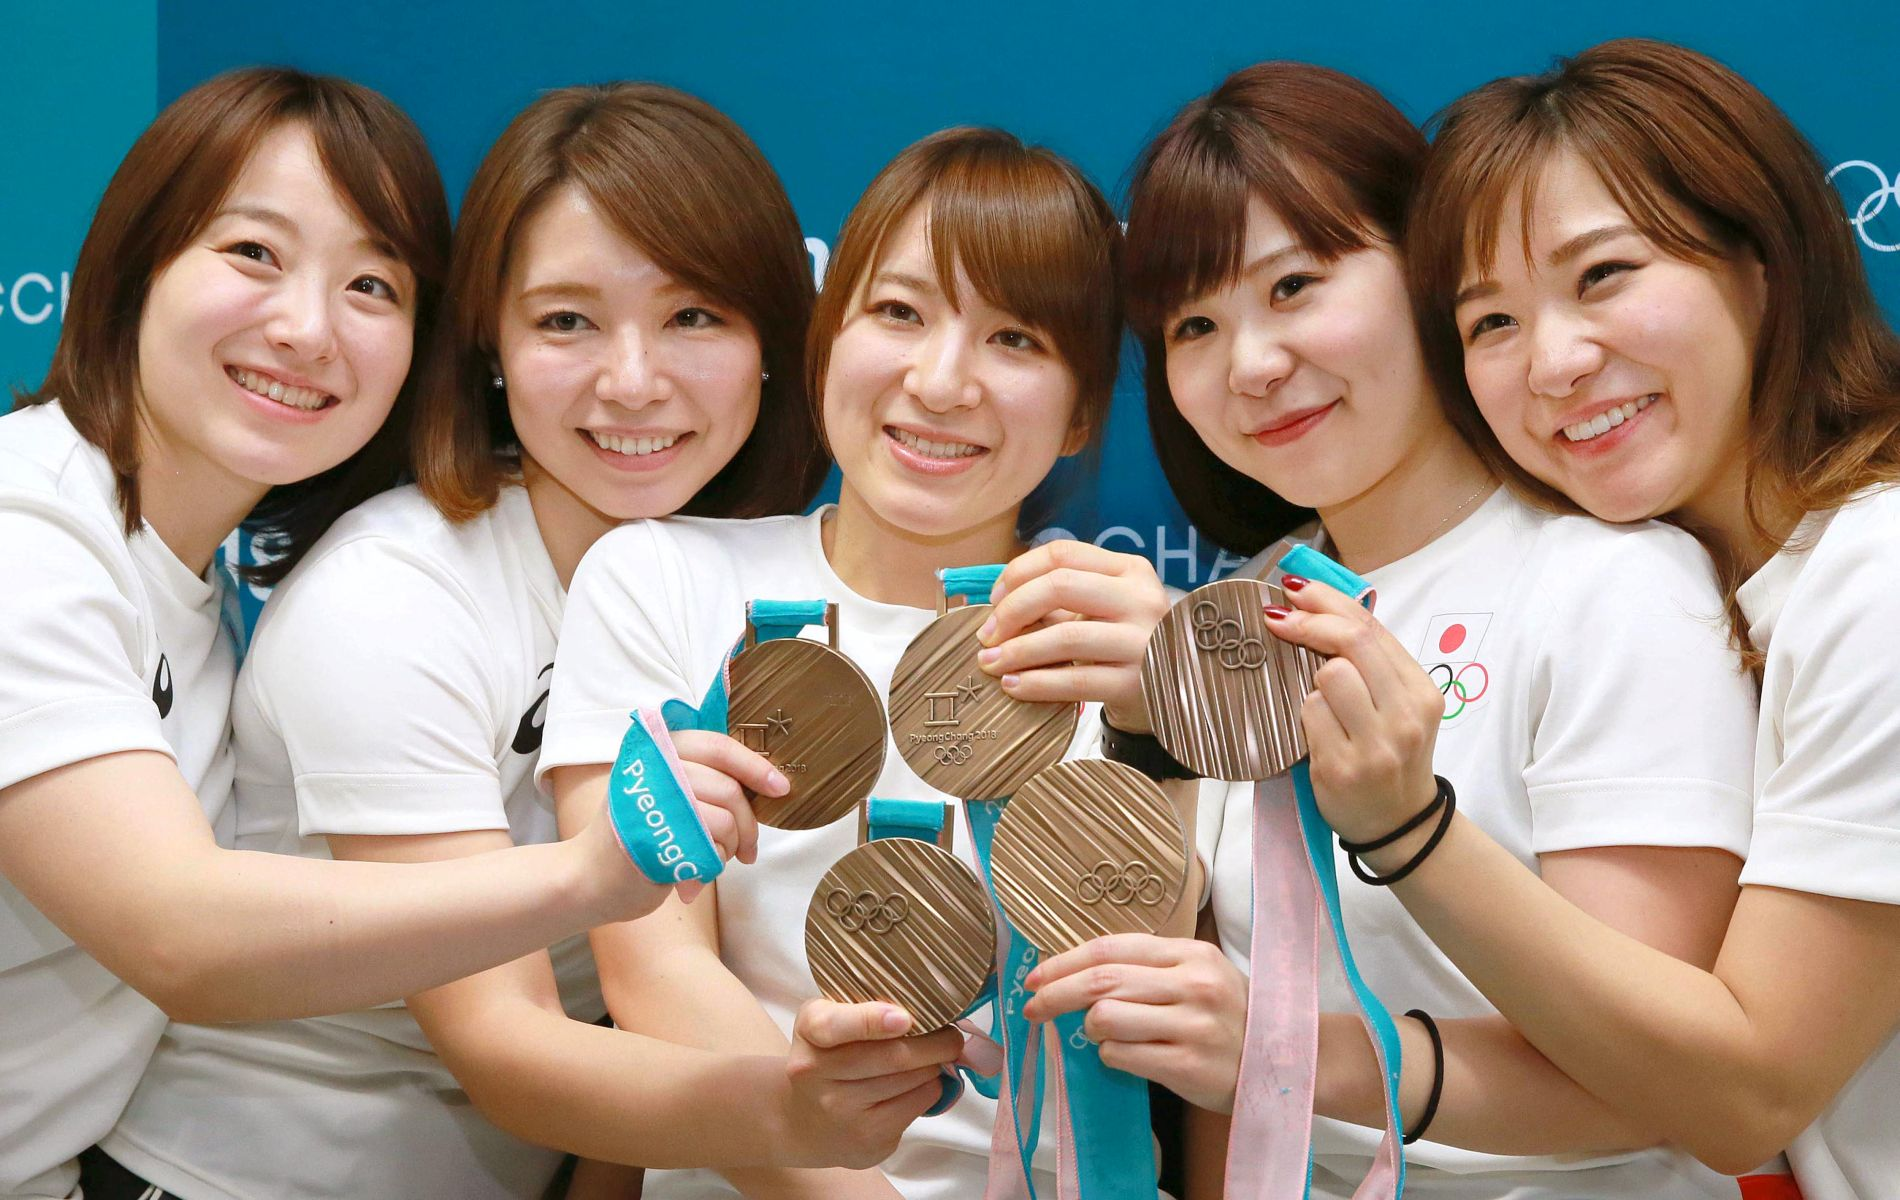 Japans Champion Lady Athletes and their Smile Power